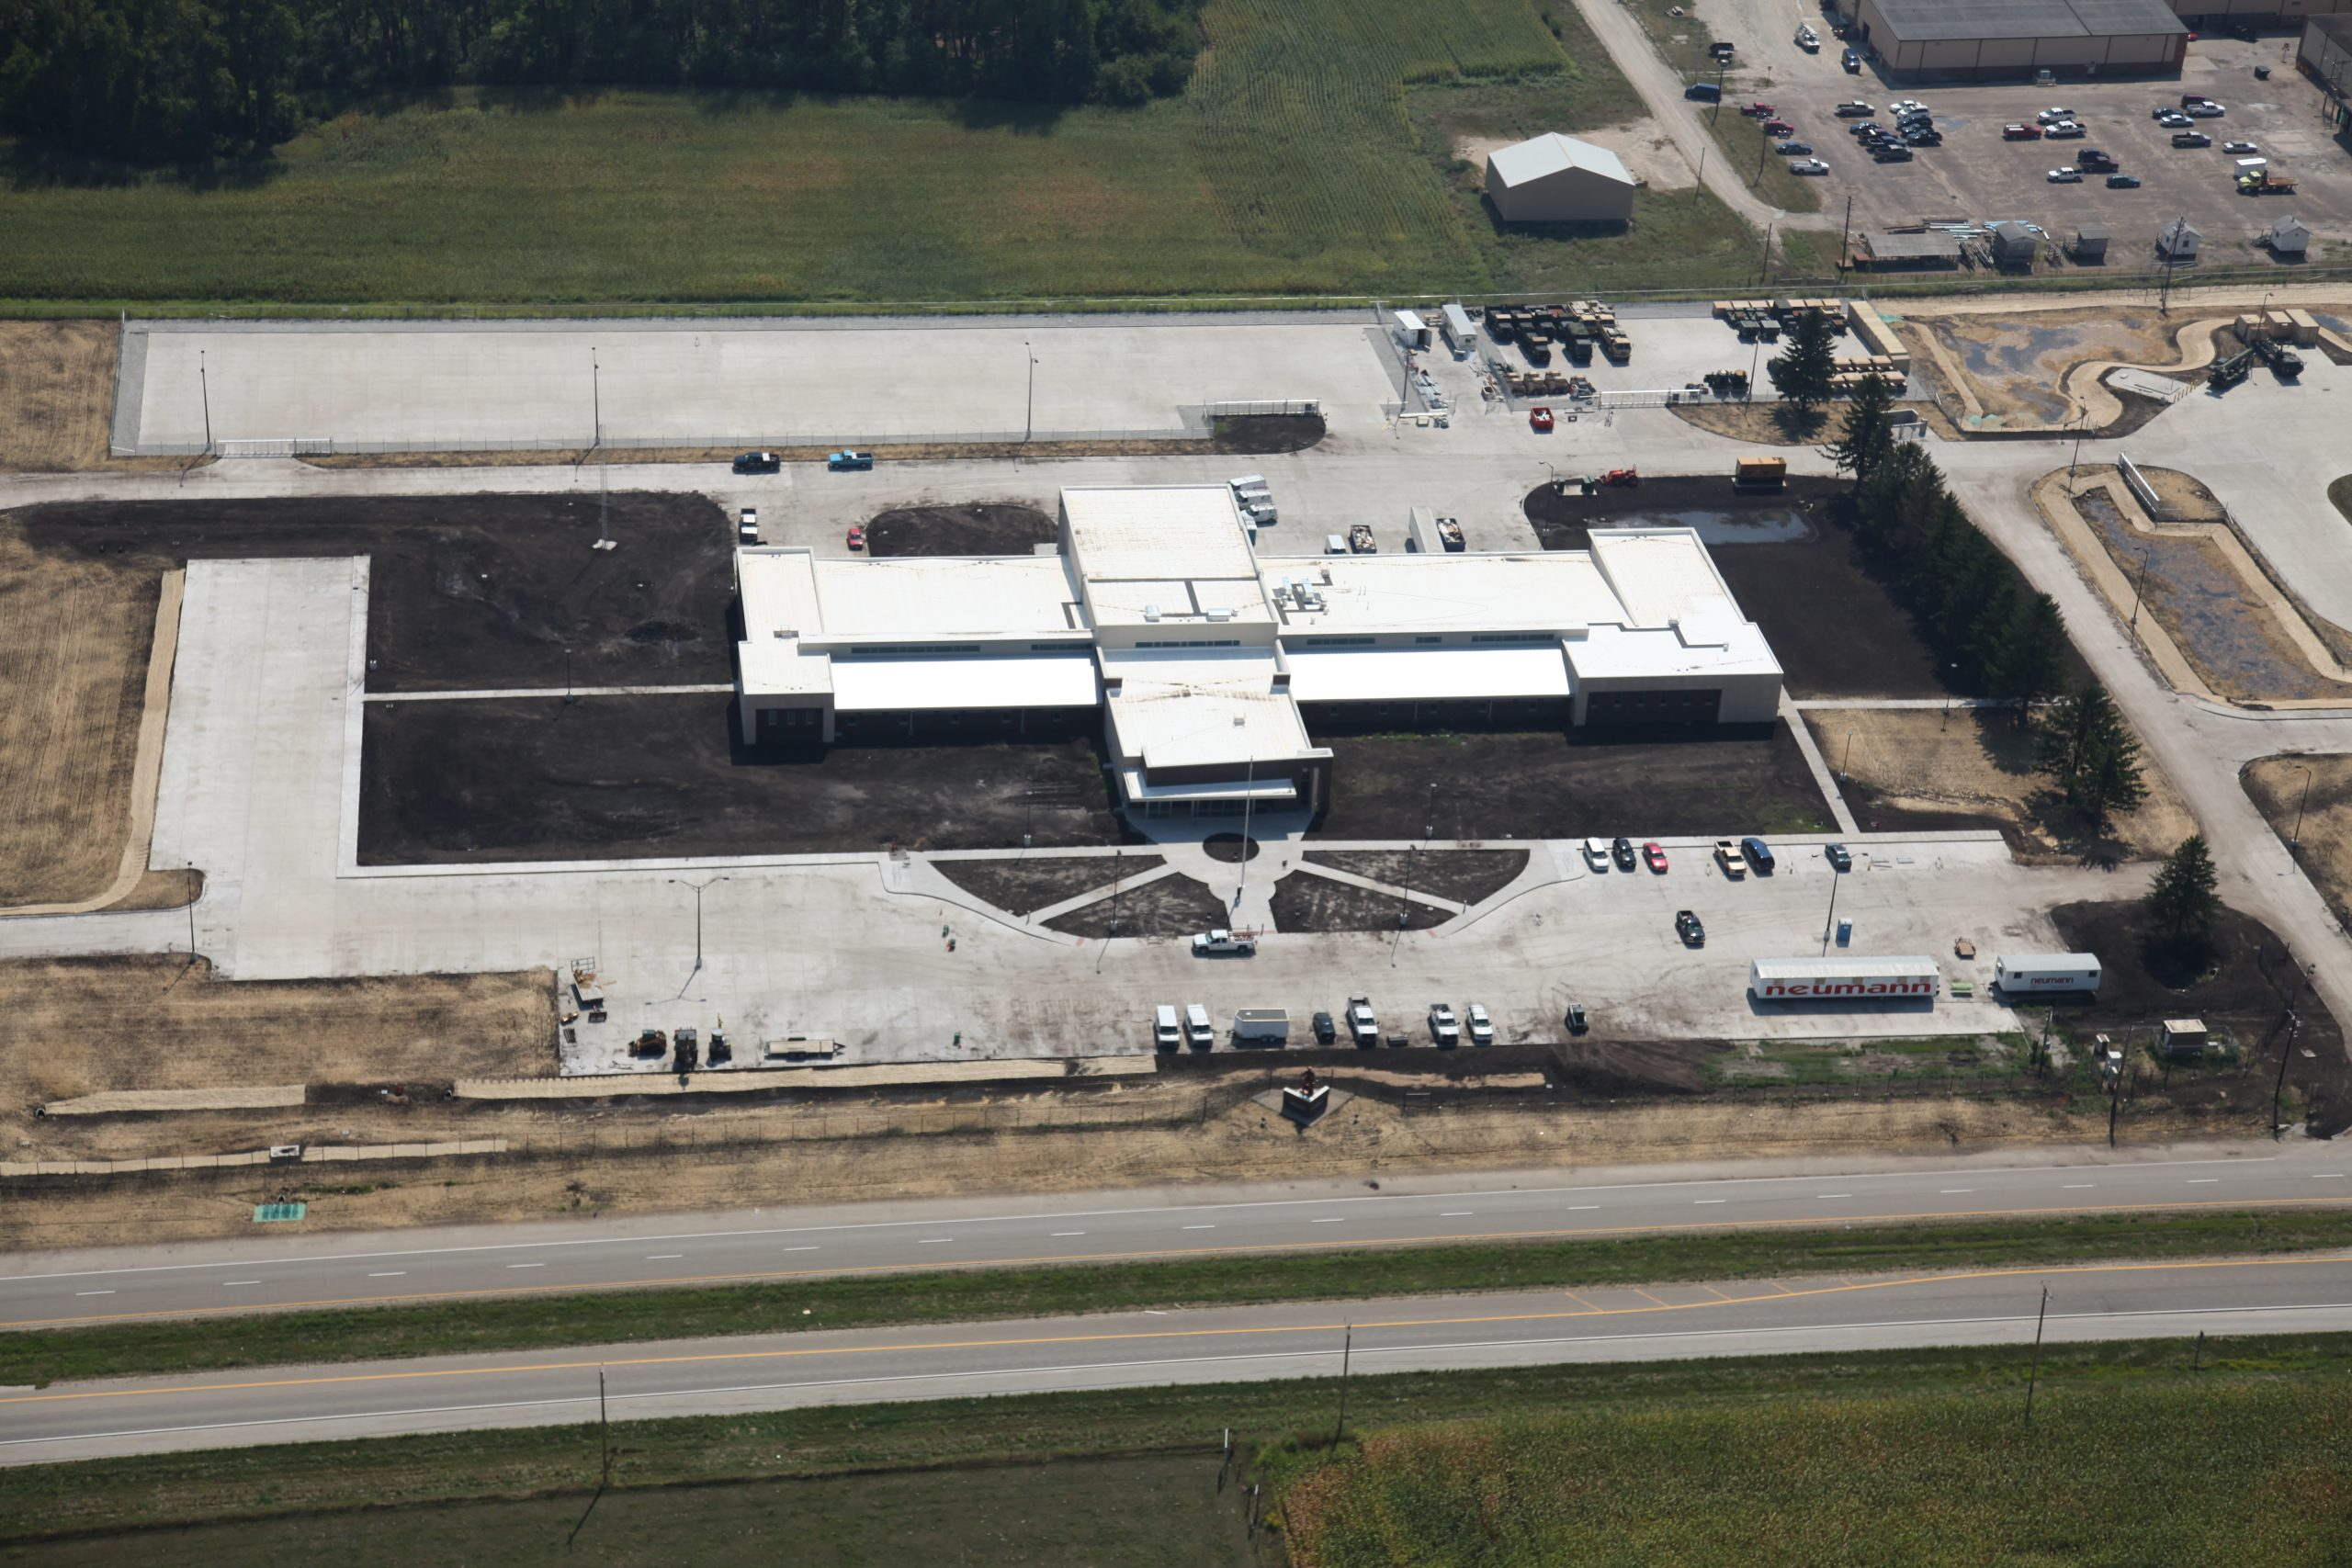 Aerial view of the Iowa Army National Guard campus in Middletown, Iowa